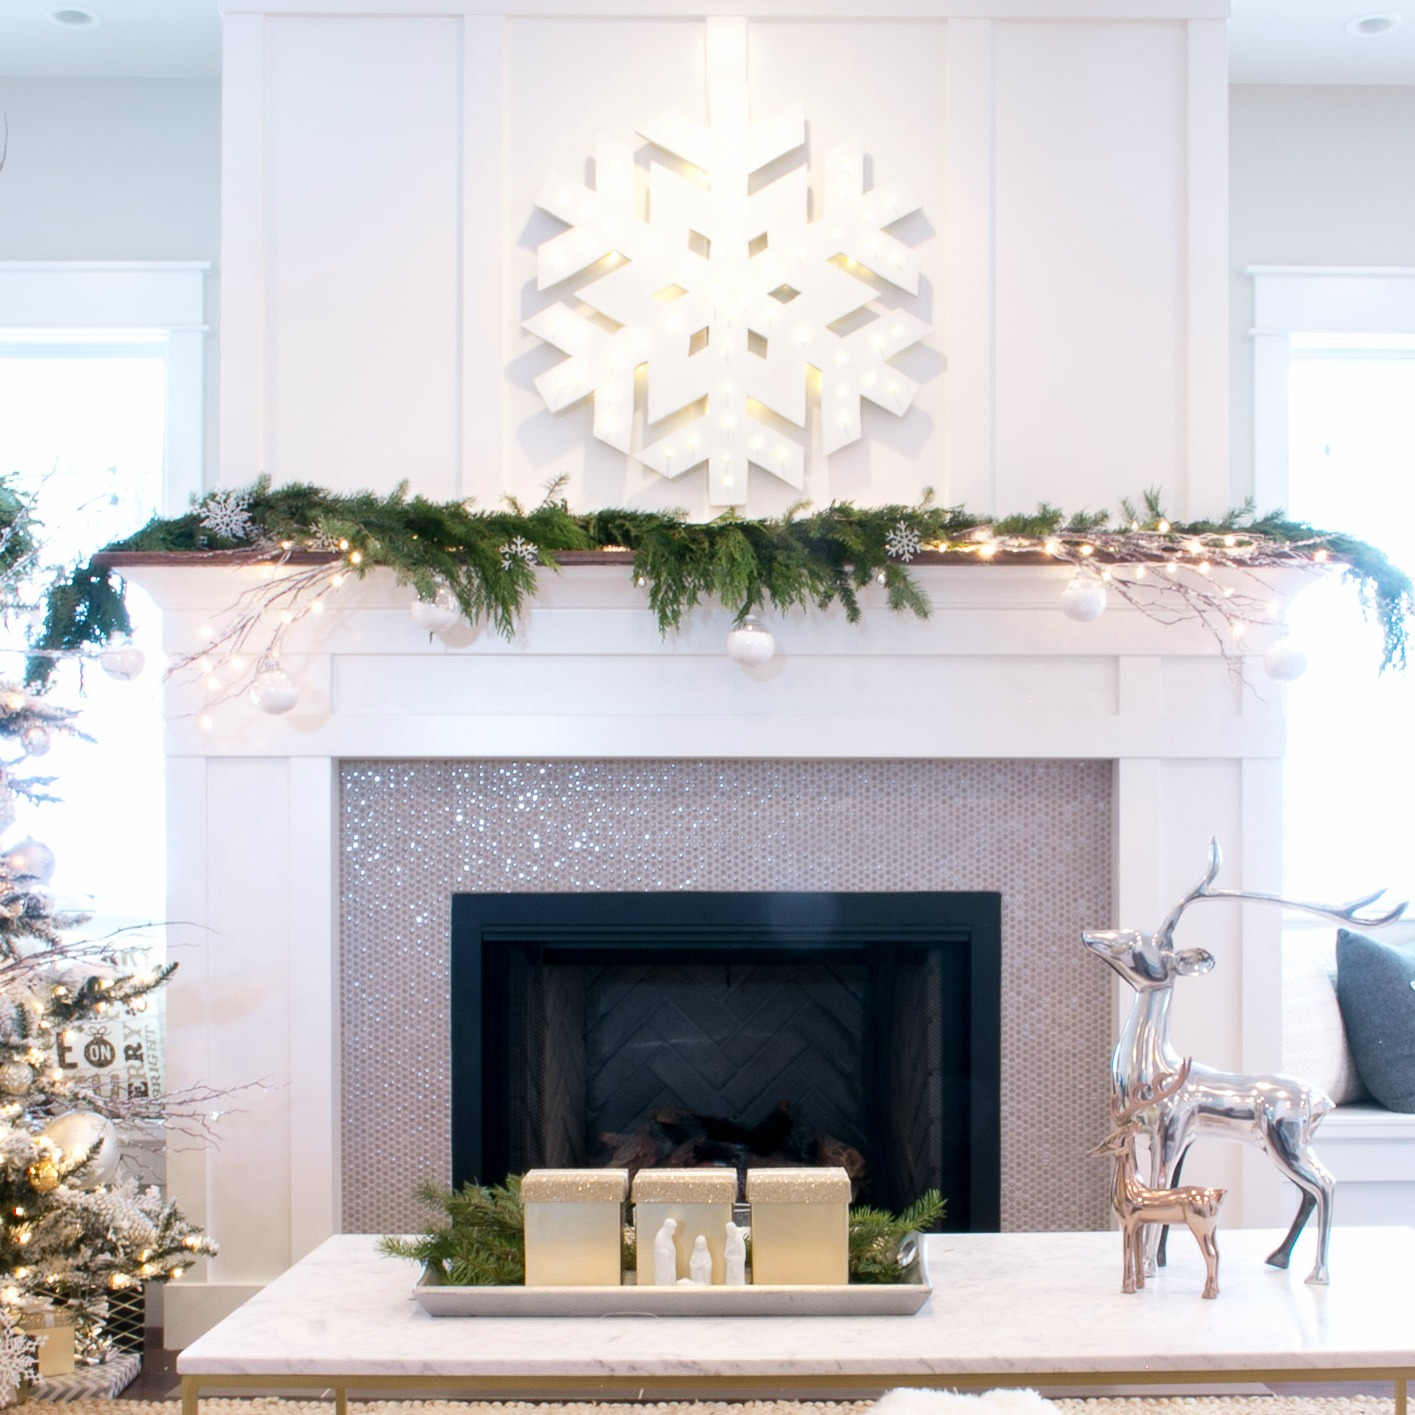 Blog - design tips, trends, and projects from Lindsay Hill Interiors